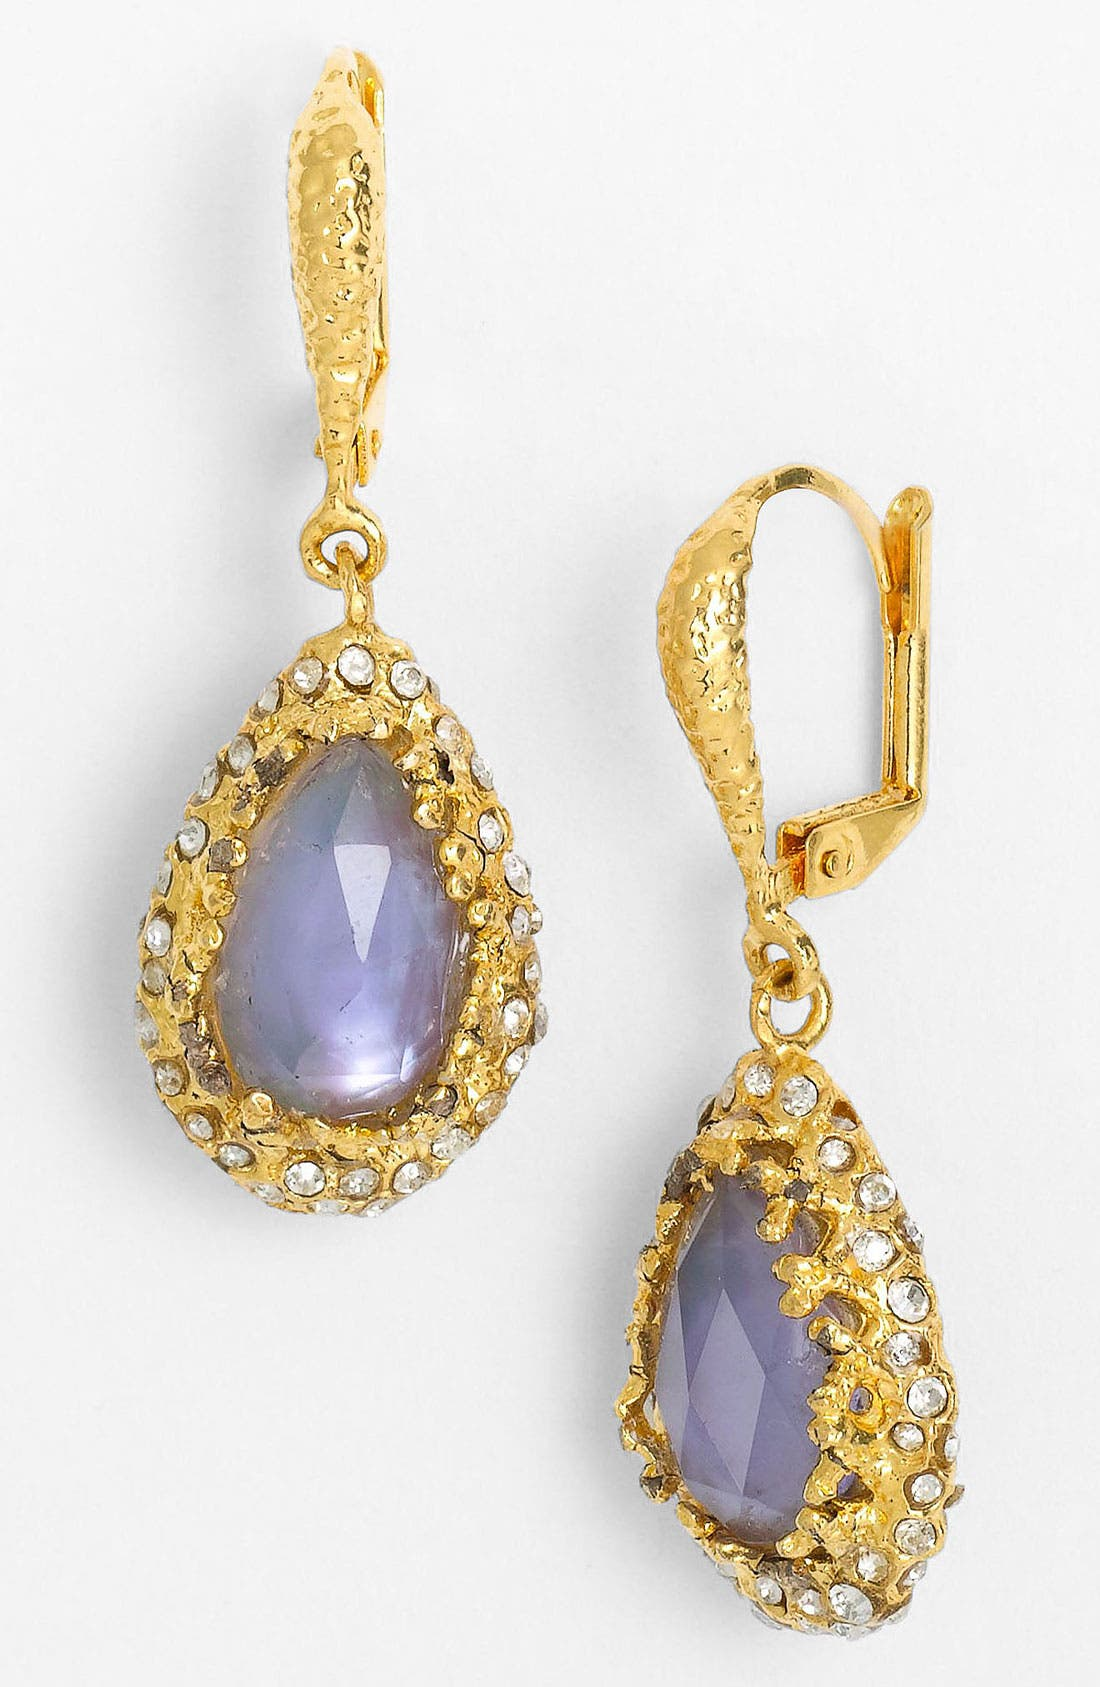 Main Image - Alexis Bittar 'Elements - Floral' Teardrop Earrings